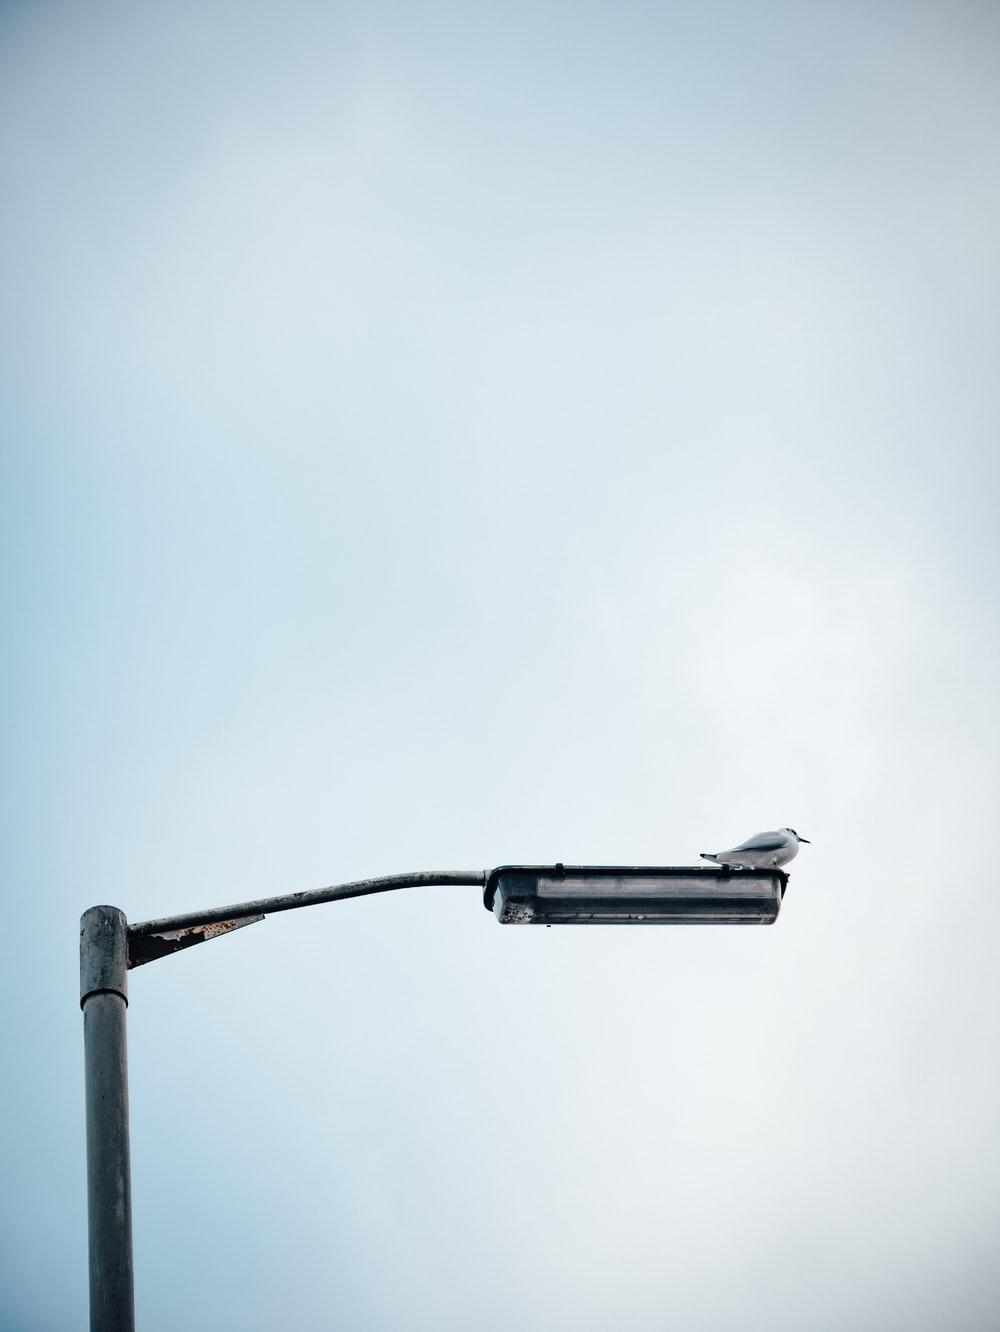 bird perched on streetlight during daytime